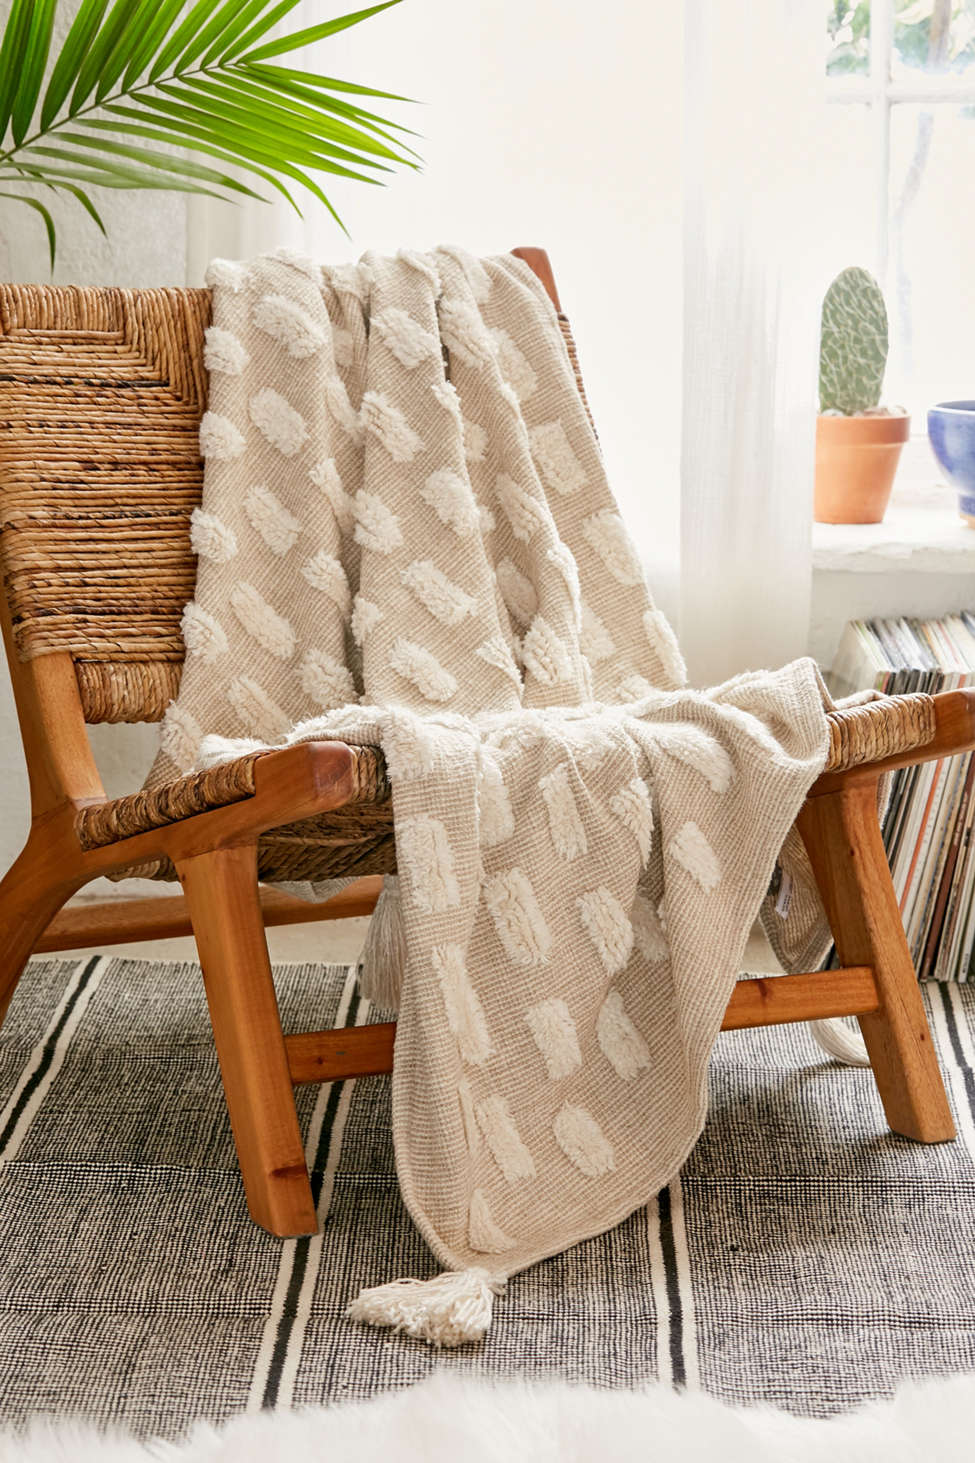 Slide View: 1: Tilly Tufted Throw Blanket